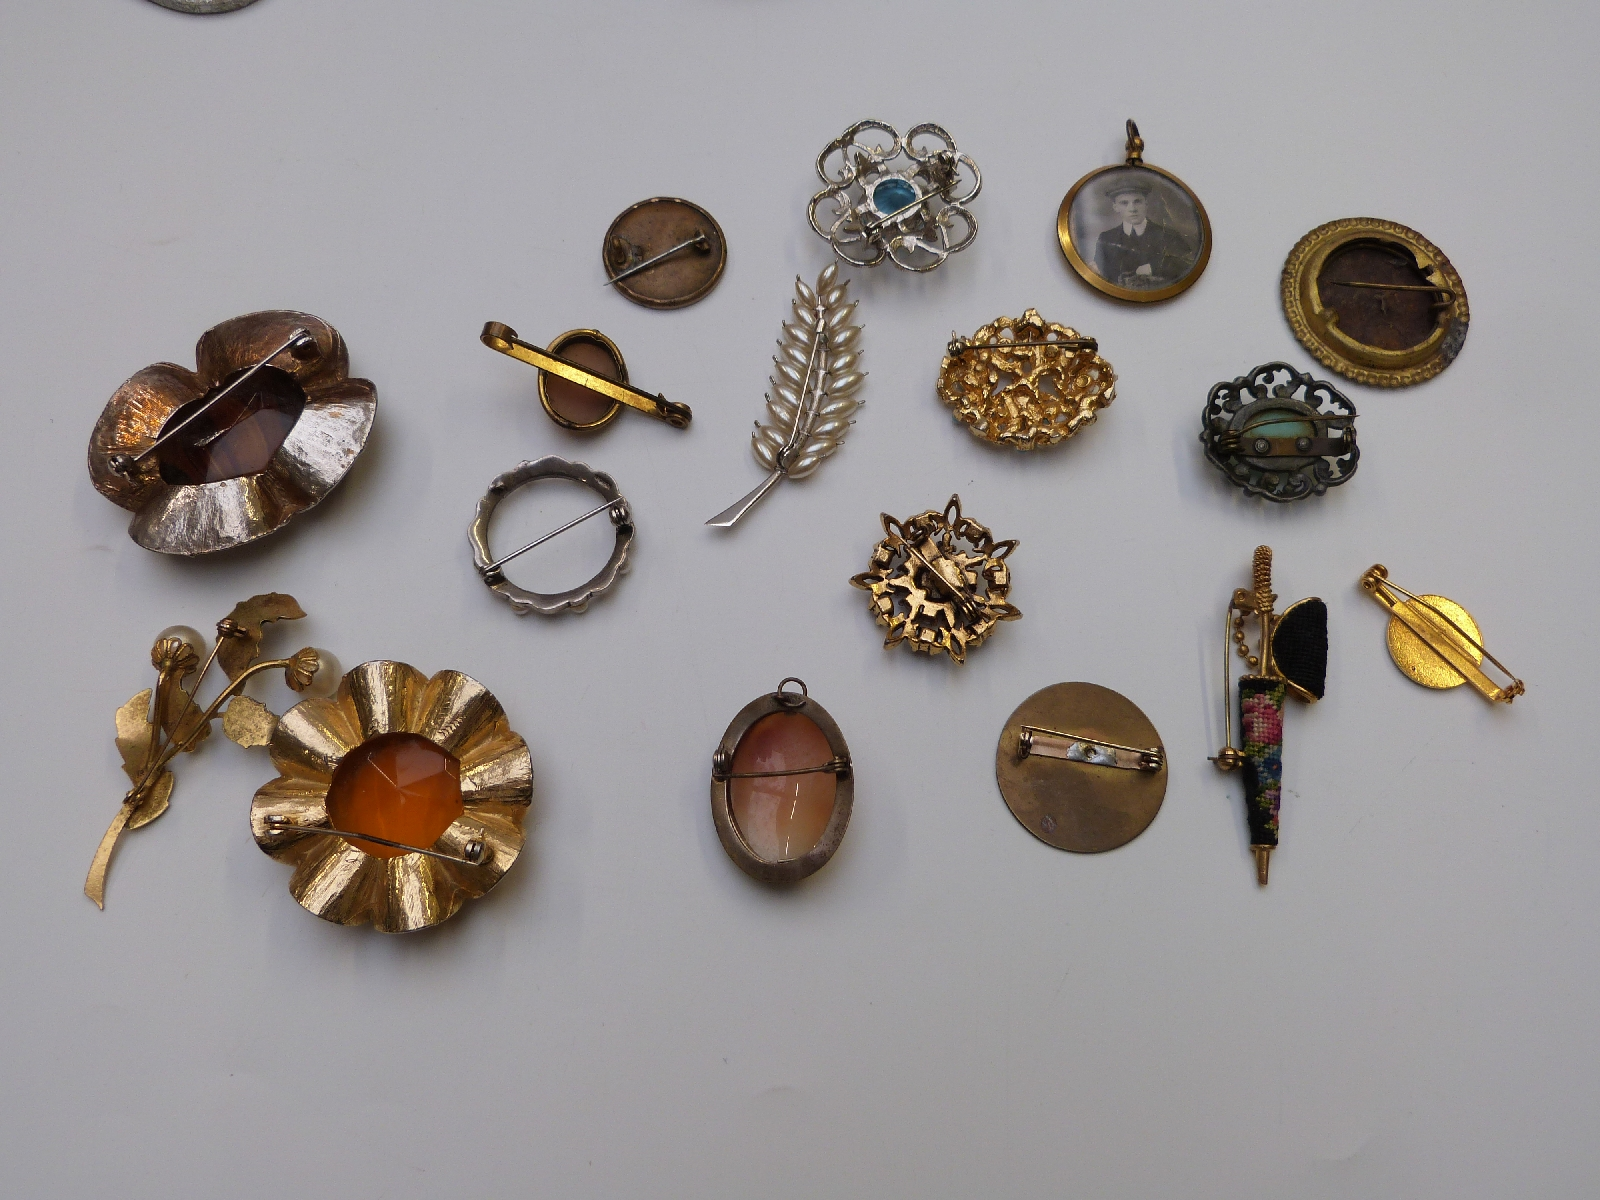 Lot 15 - A collection of costume jewellery including mother of pearl necklace, Victorian cameo brooch, silver